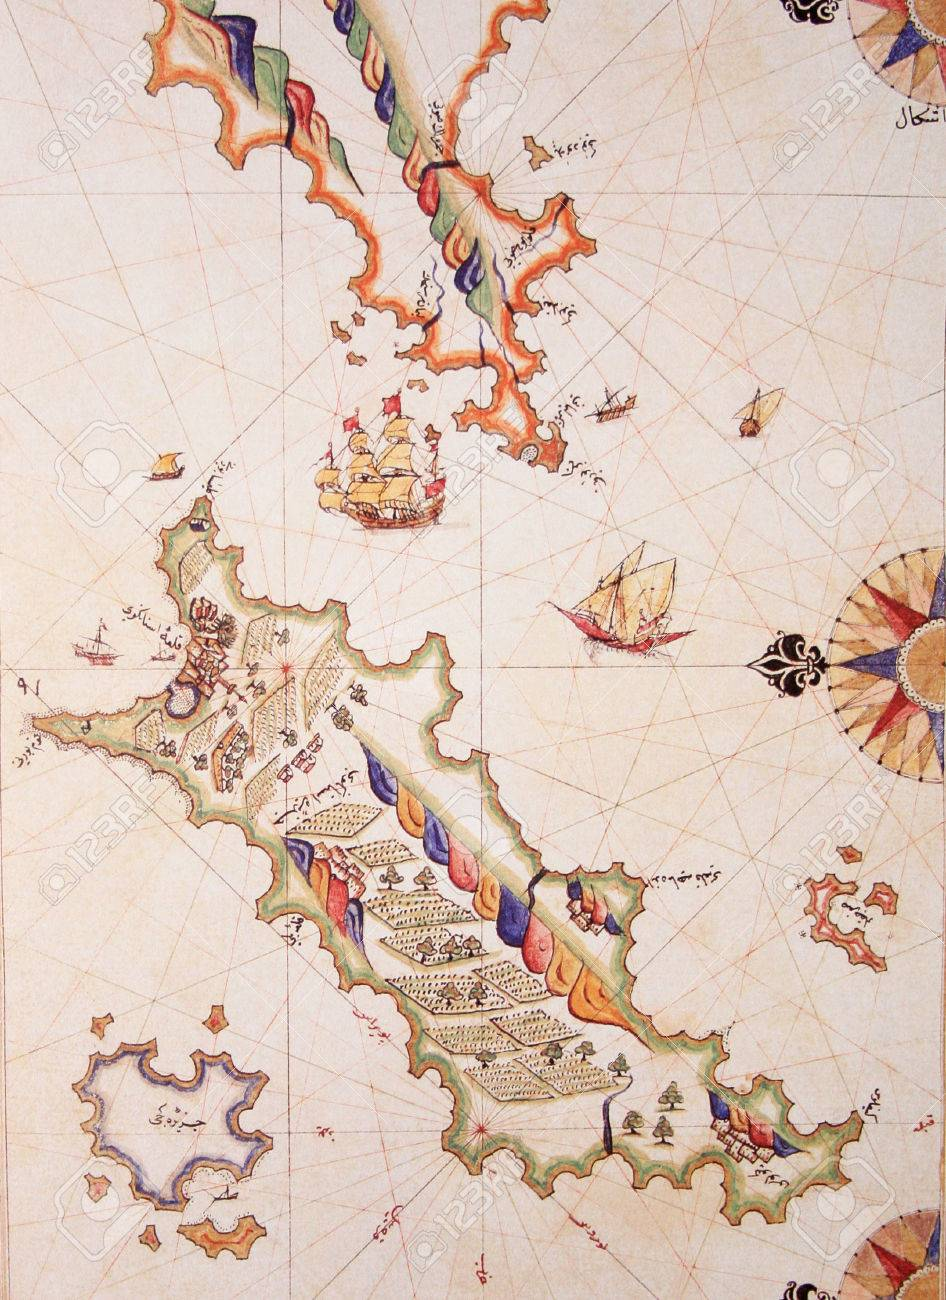 Copy of piri reis map on a brochure cos kos islandgreece stock copy of piri reis map on a brochure cos kos islandgreece gumiabroncs Choice Image